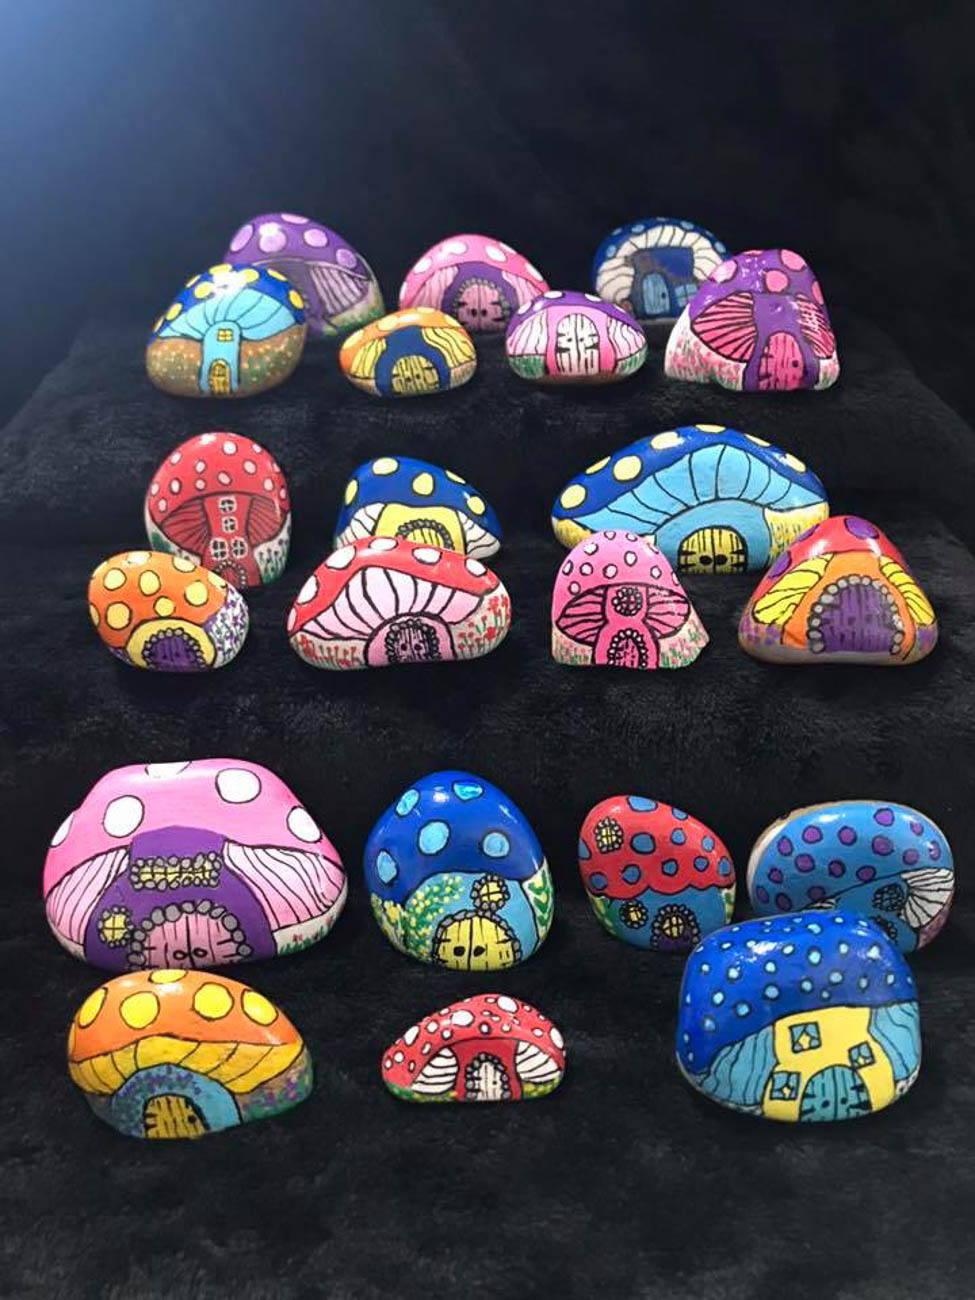 The NKY Hidden Rocks Facebook page started in 2017 by founder Jo Price Craven to combat negativity she was seeing online. The concept is to design a rock with inspiring words or images, hide it in the community, and brighten someone's day when they find it. They can then keep the rock, re-hide it, or replace it with one of their own to keep the positive, traveling rocks in circulation. / Artist: & Image: Dedra Deaton Lutes // Published: 8.17.19